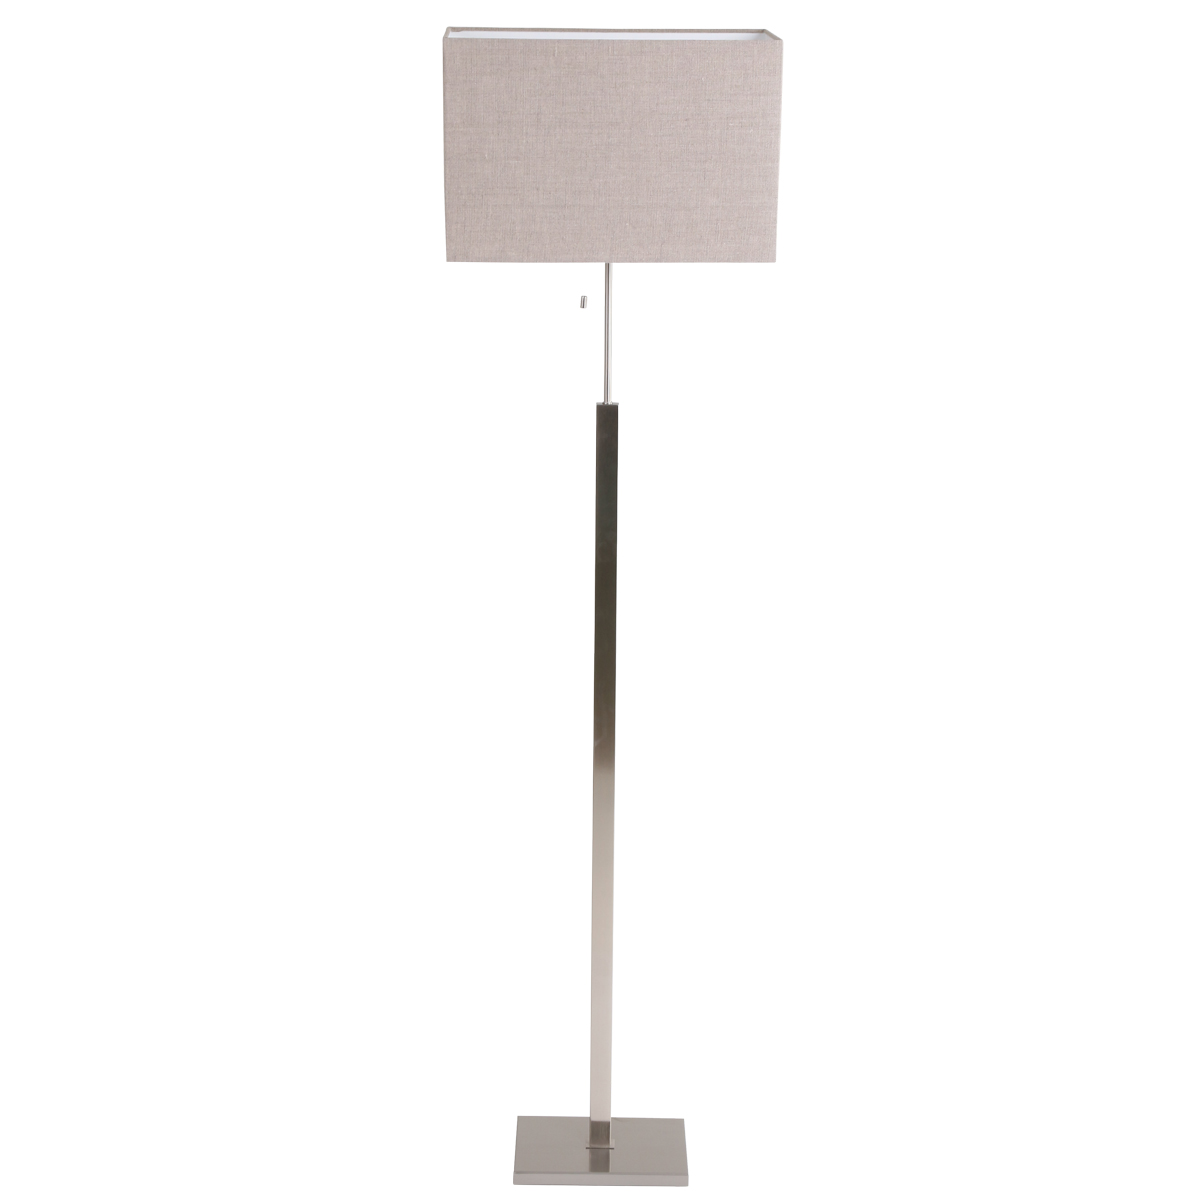 blaise moderne stehlampe stahl beige stehlampen online. Black Bedroom Furniture Sets. Home Design Ideas